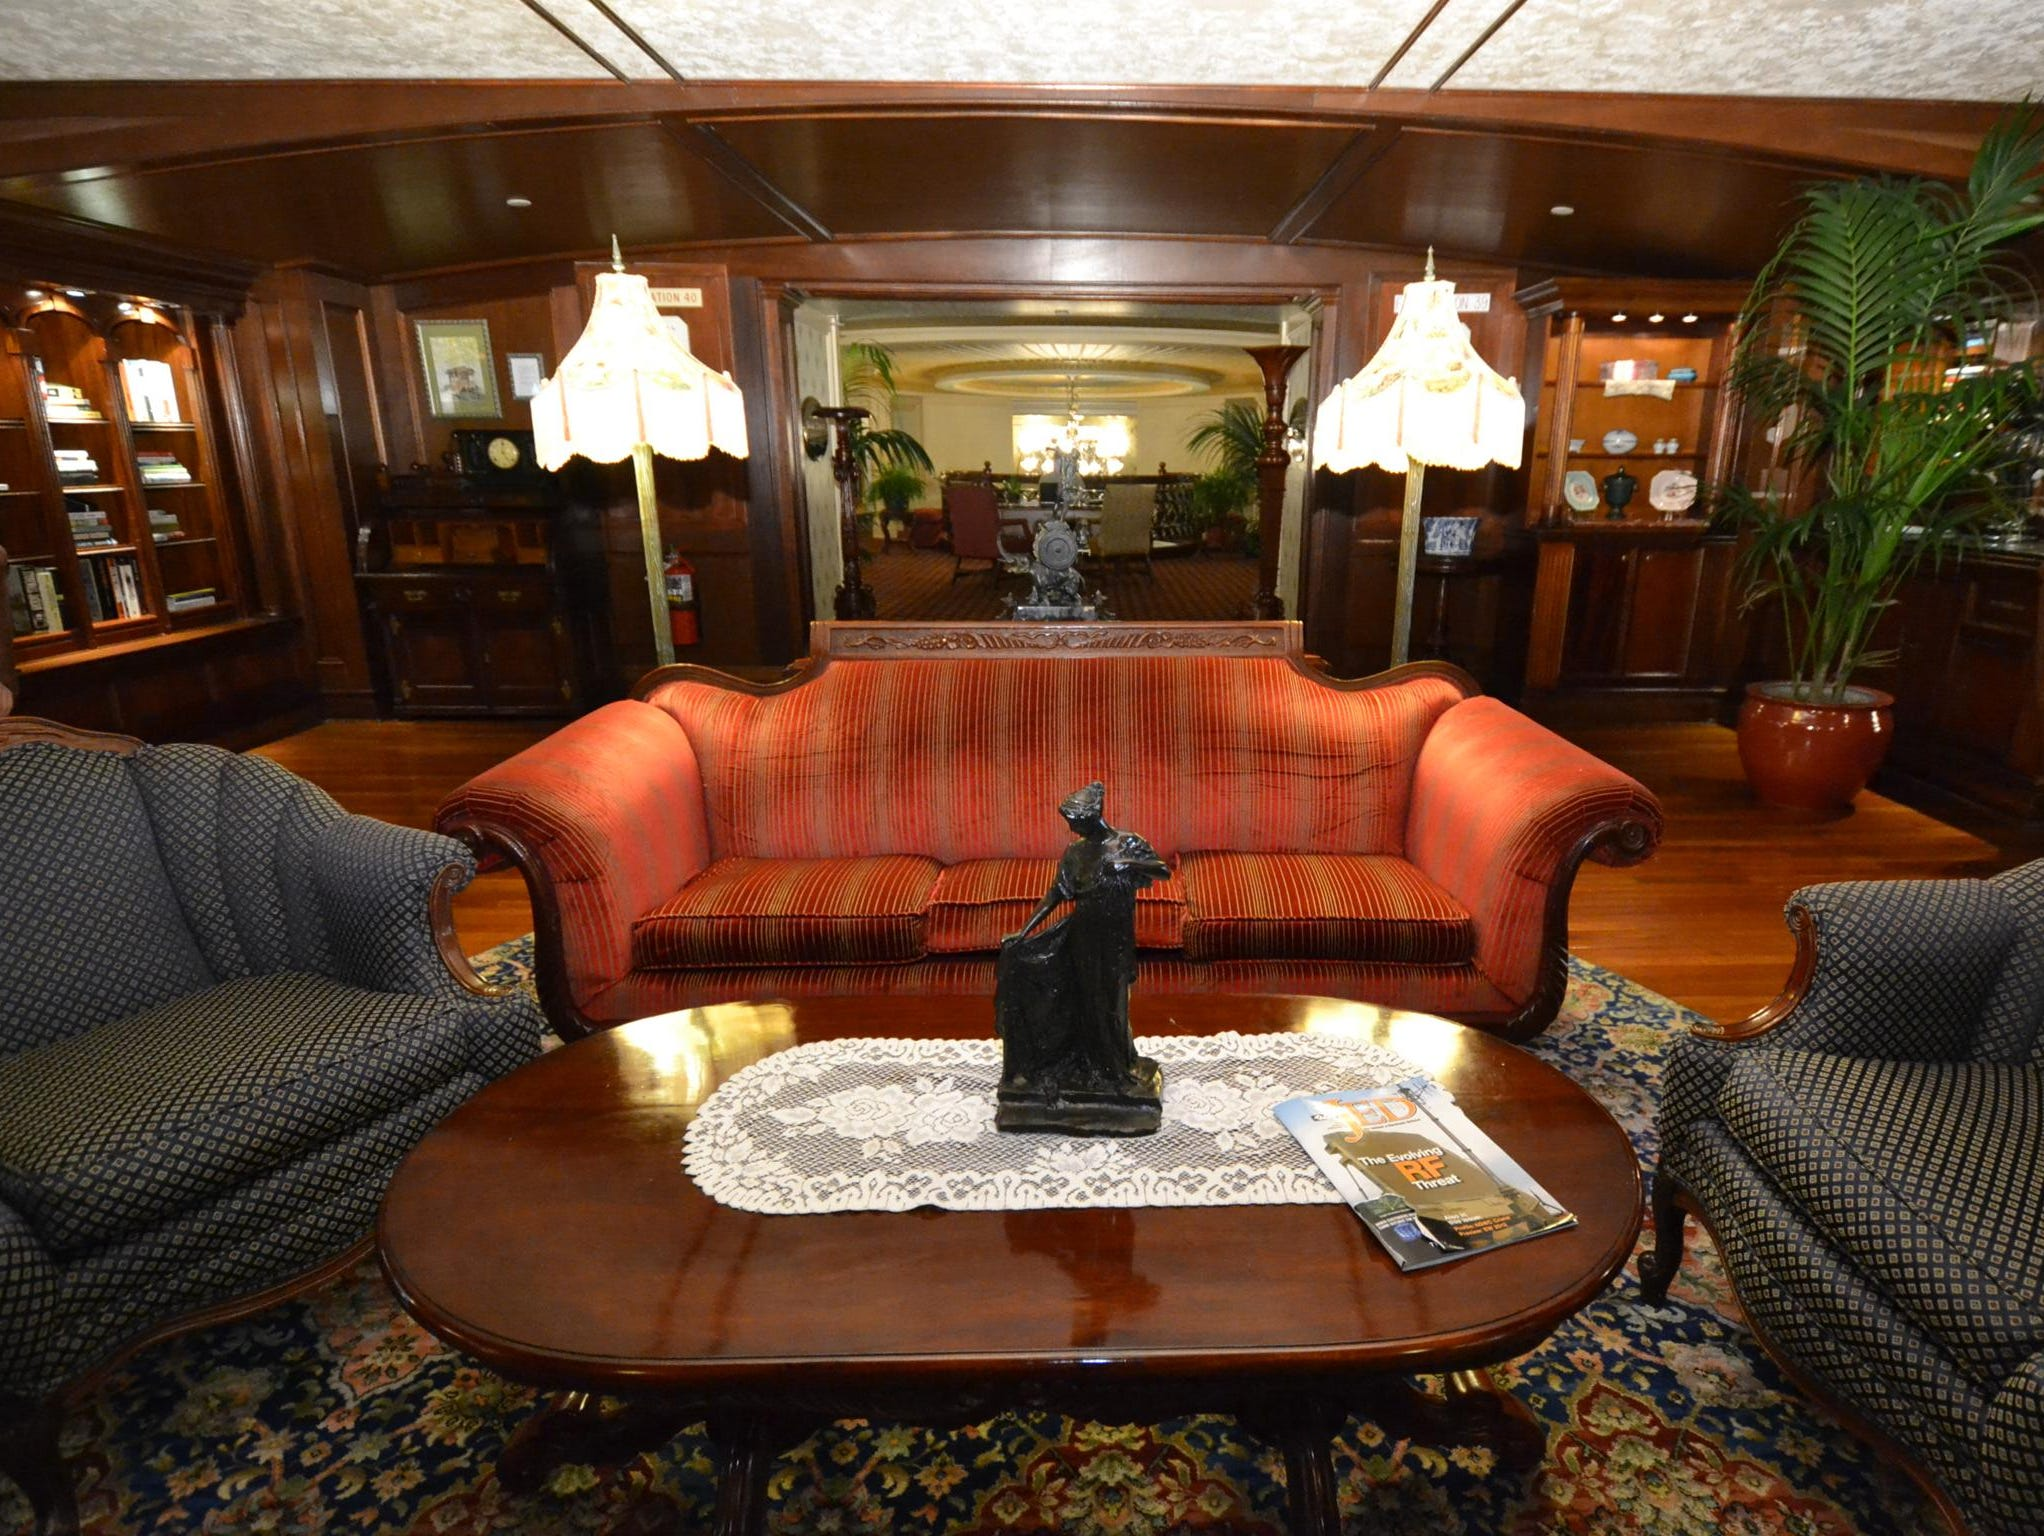 Victorian furniture including sofas, plush armchairs and side tables fill the Mark Twain Gallery.